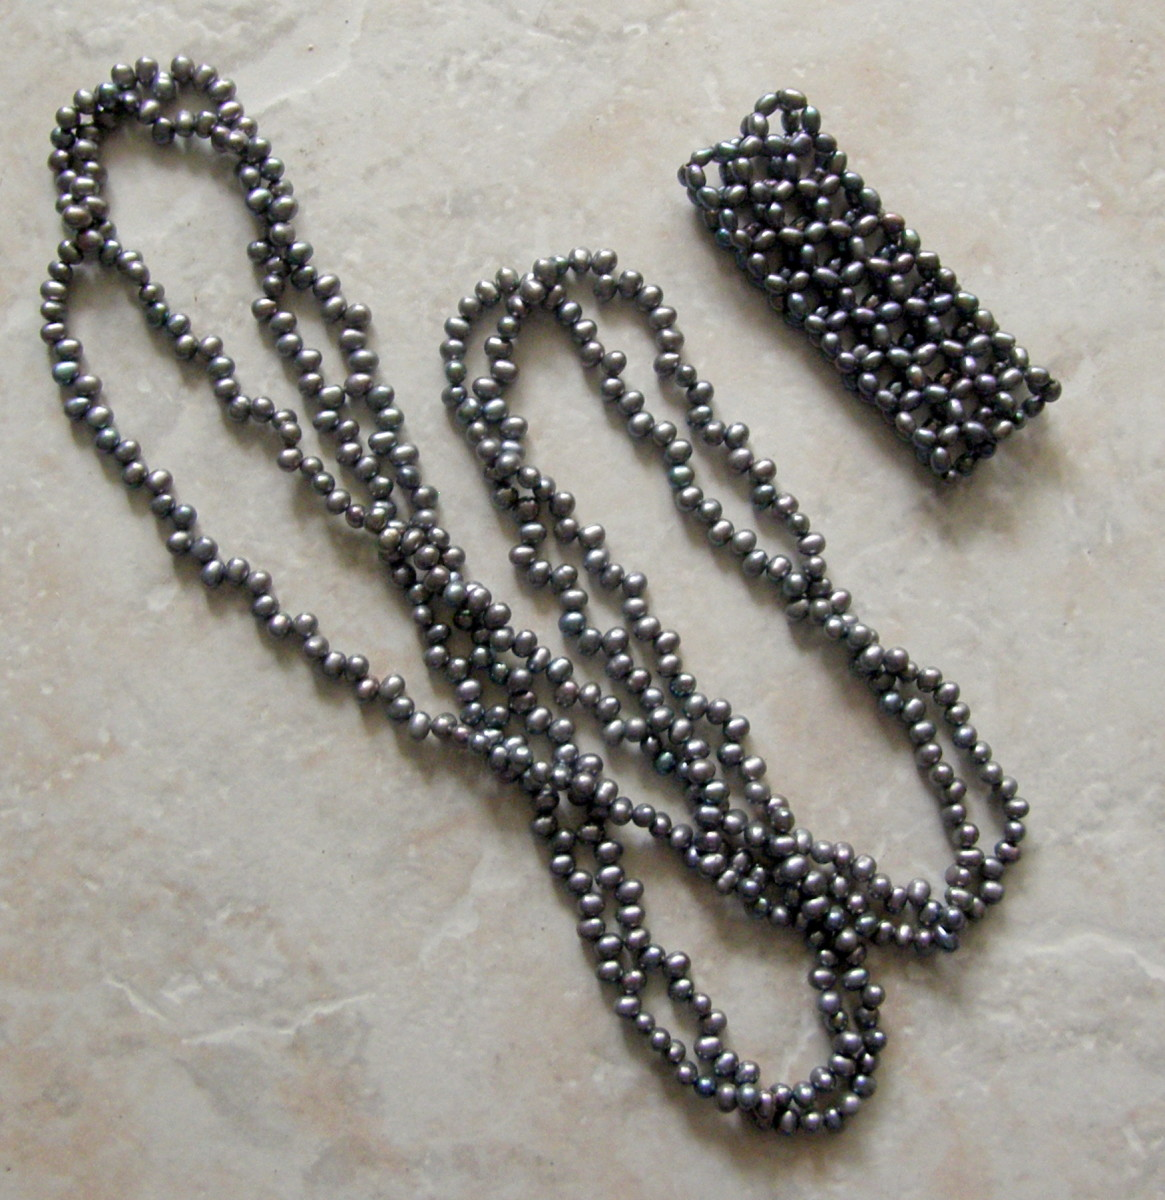 Black seed pearl necklace and bracelet